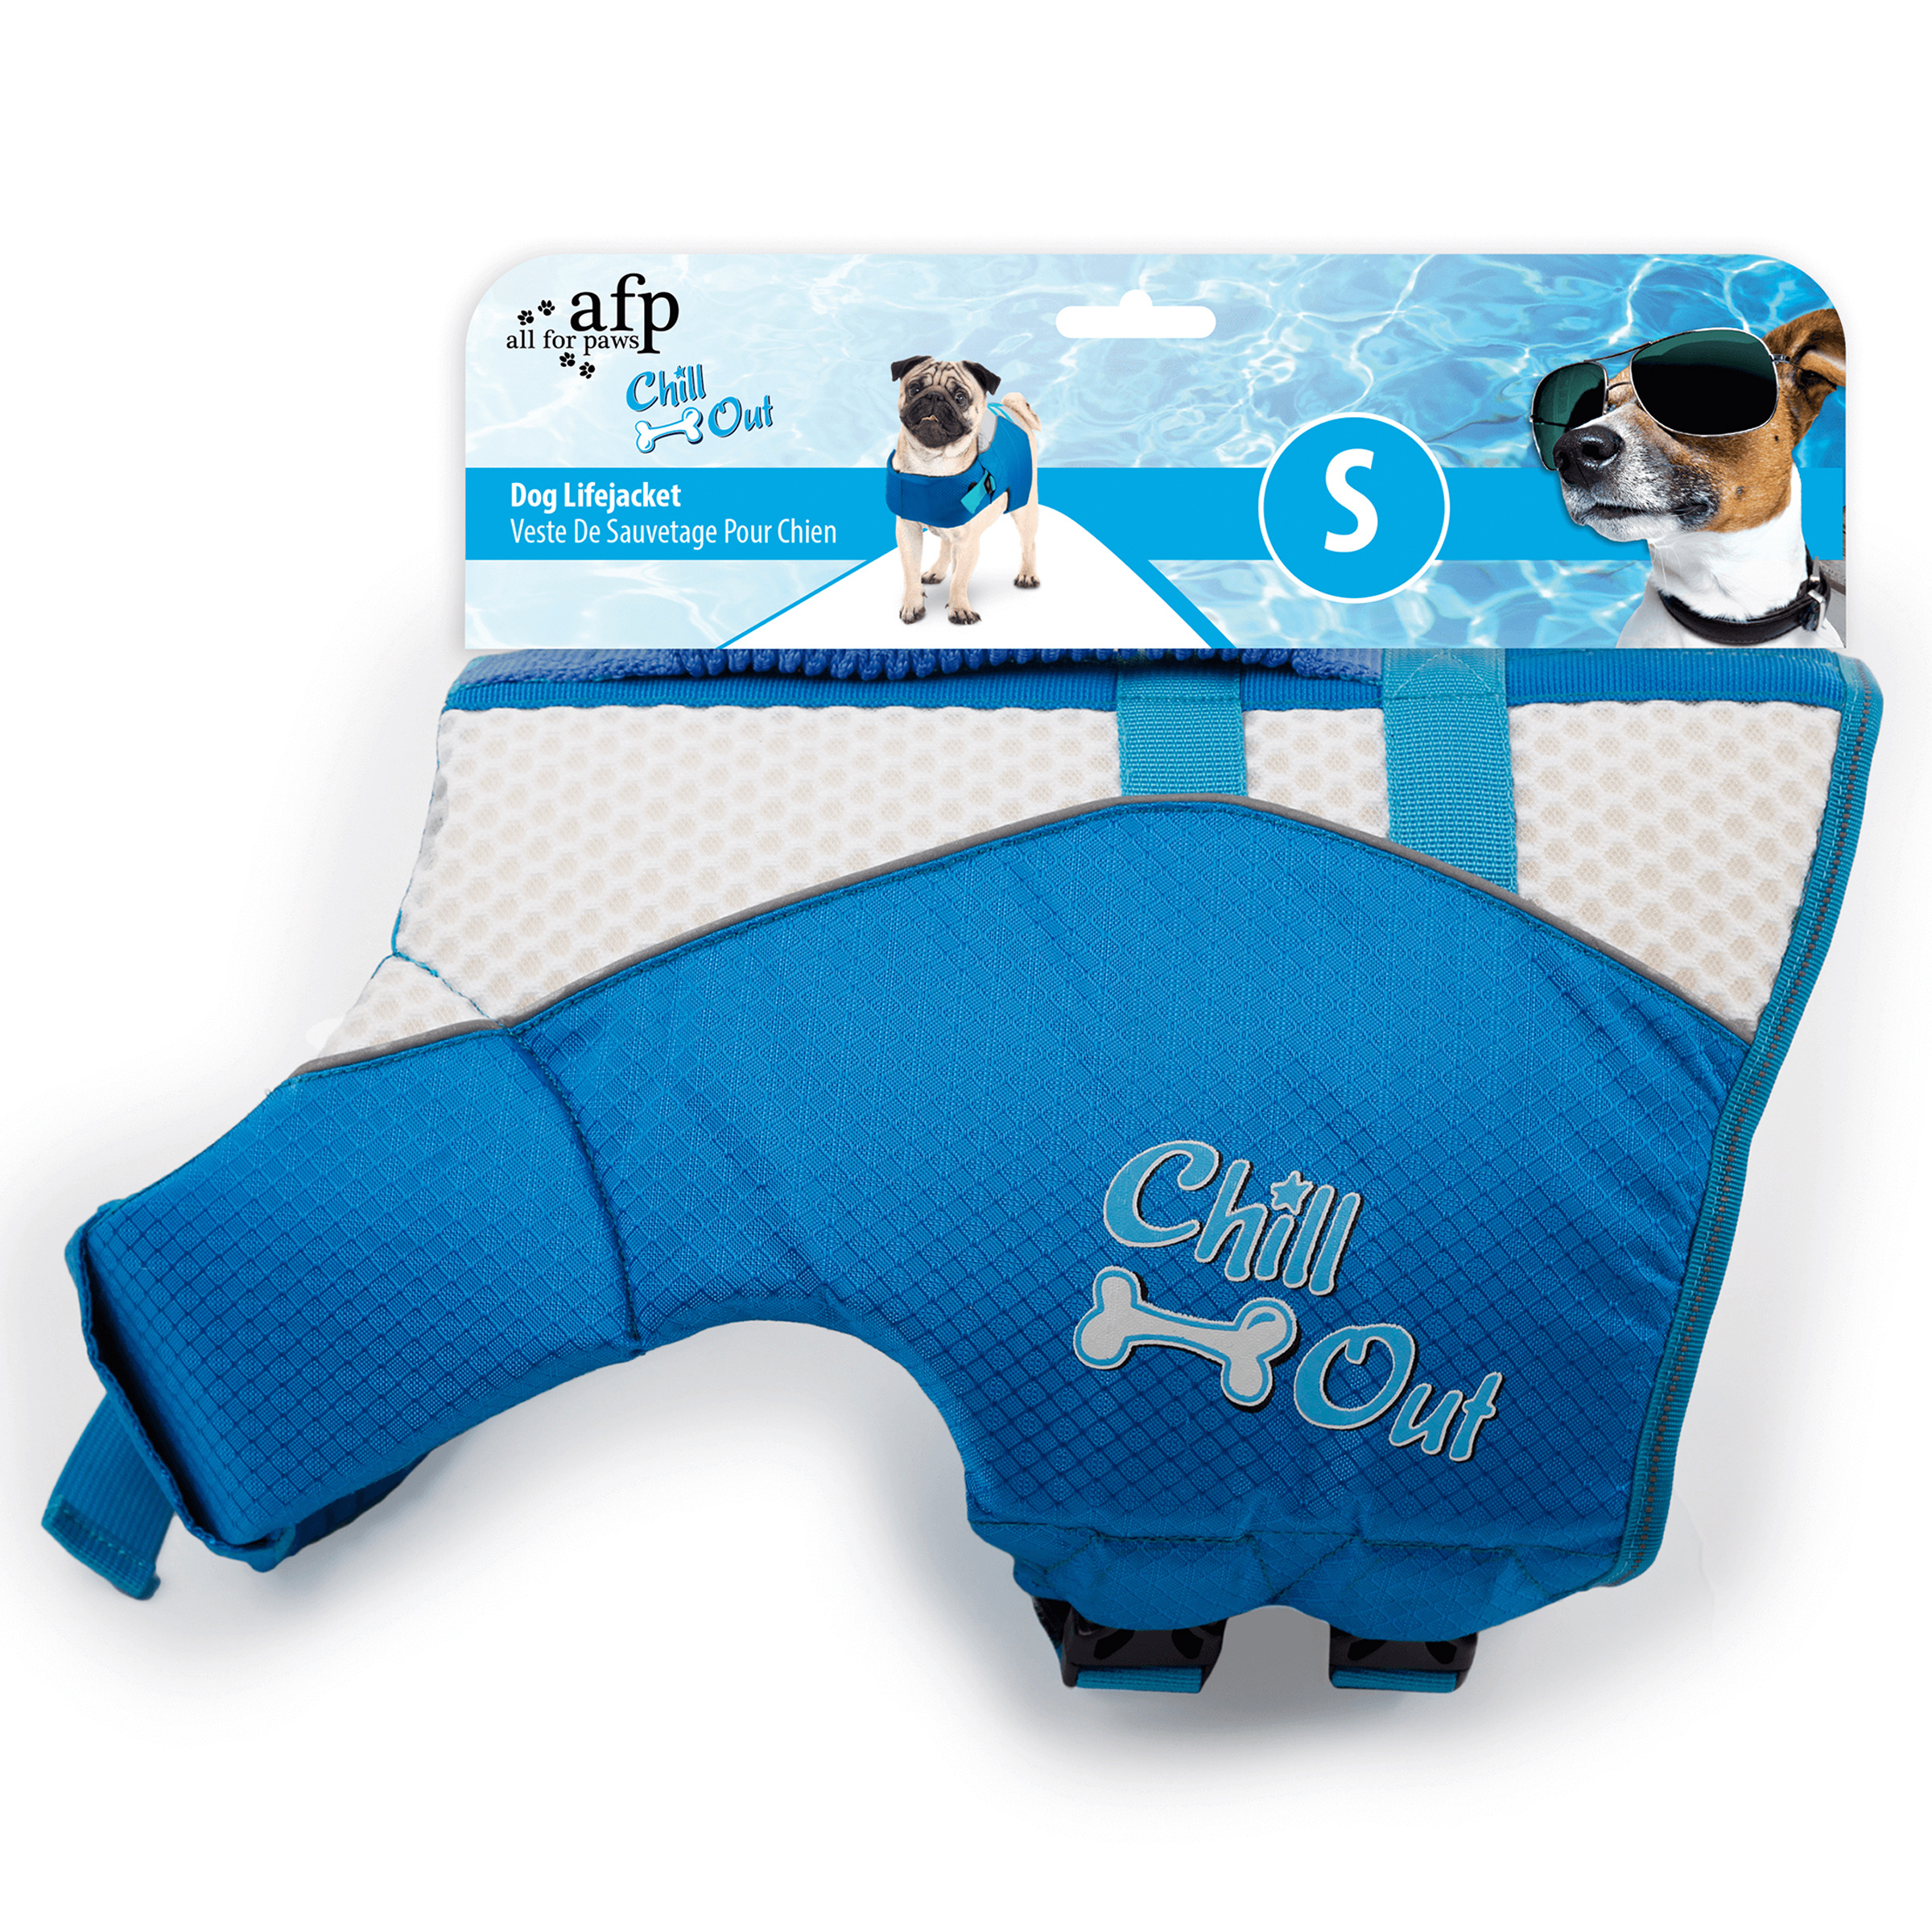 Image of All for Paws AFP Chill Out Schwimmweste Hund mit Griff S 12-25kg